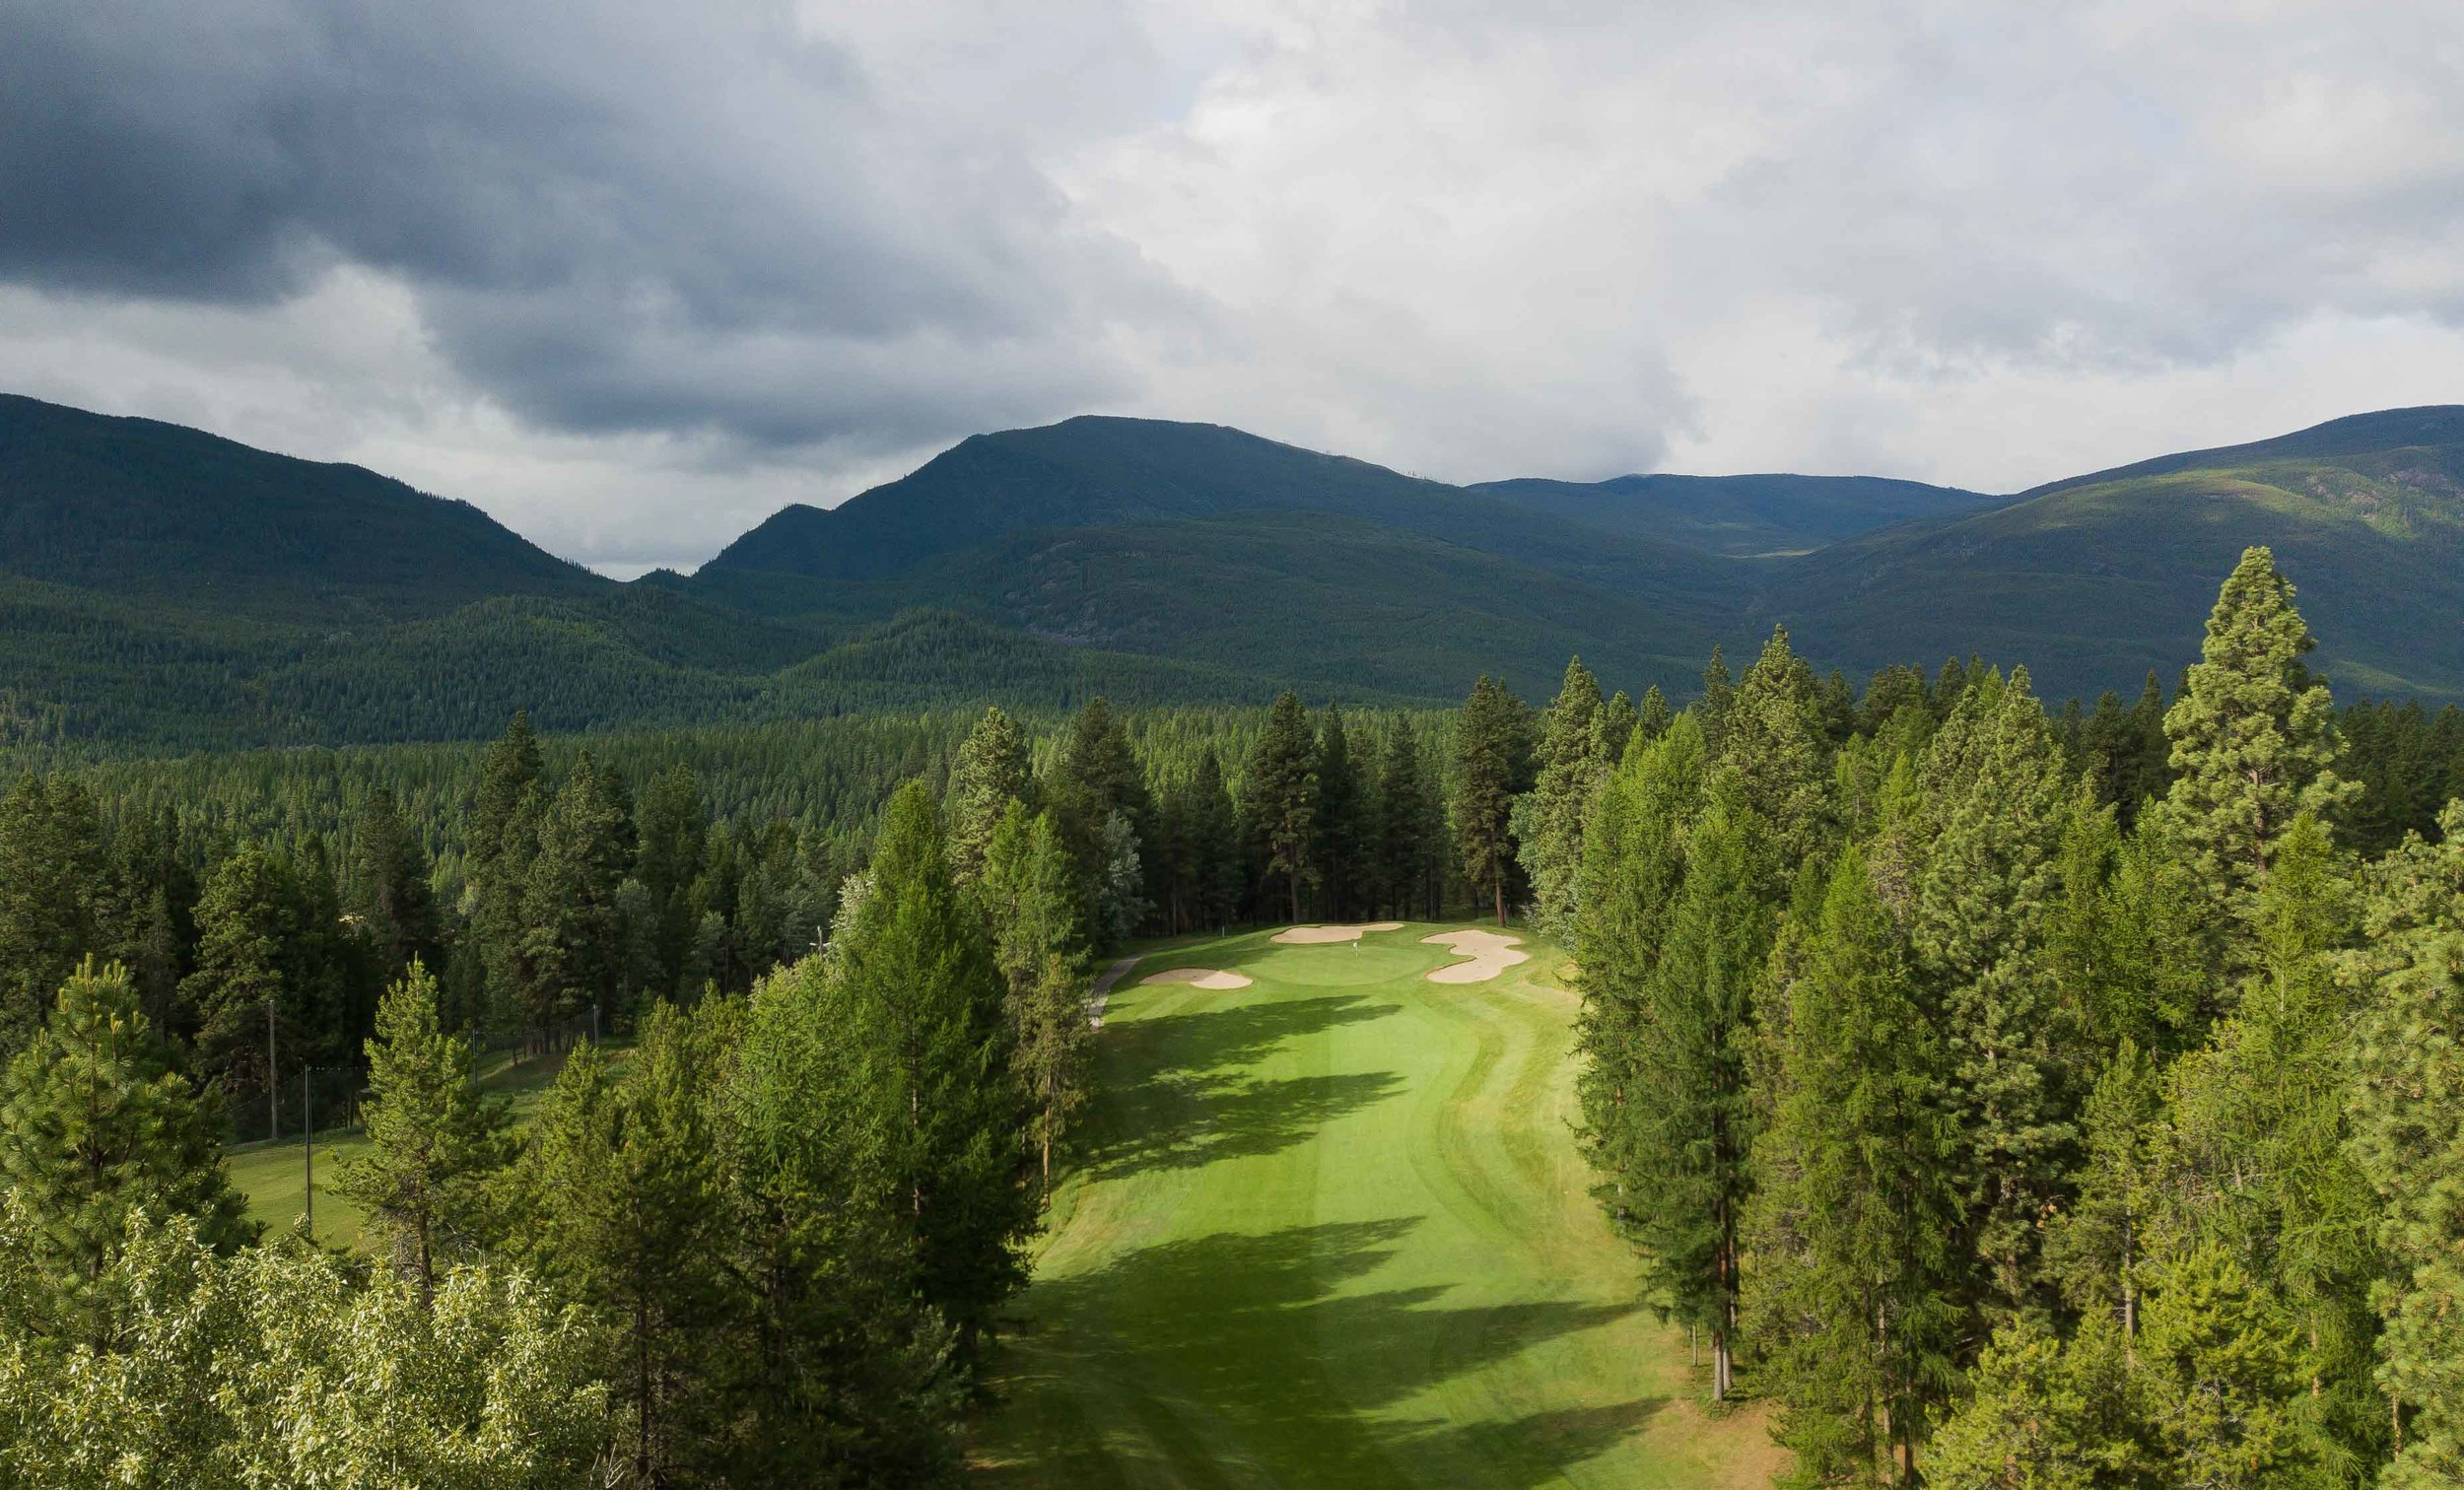 Just golf, trees, and mountains at Kimberley Golf Club.